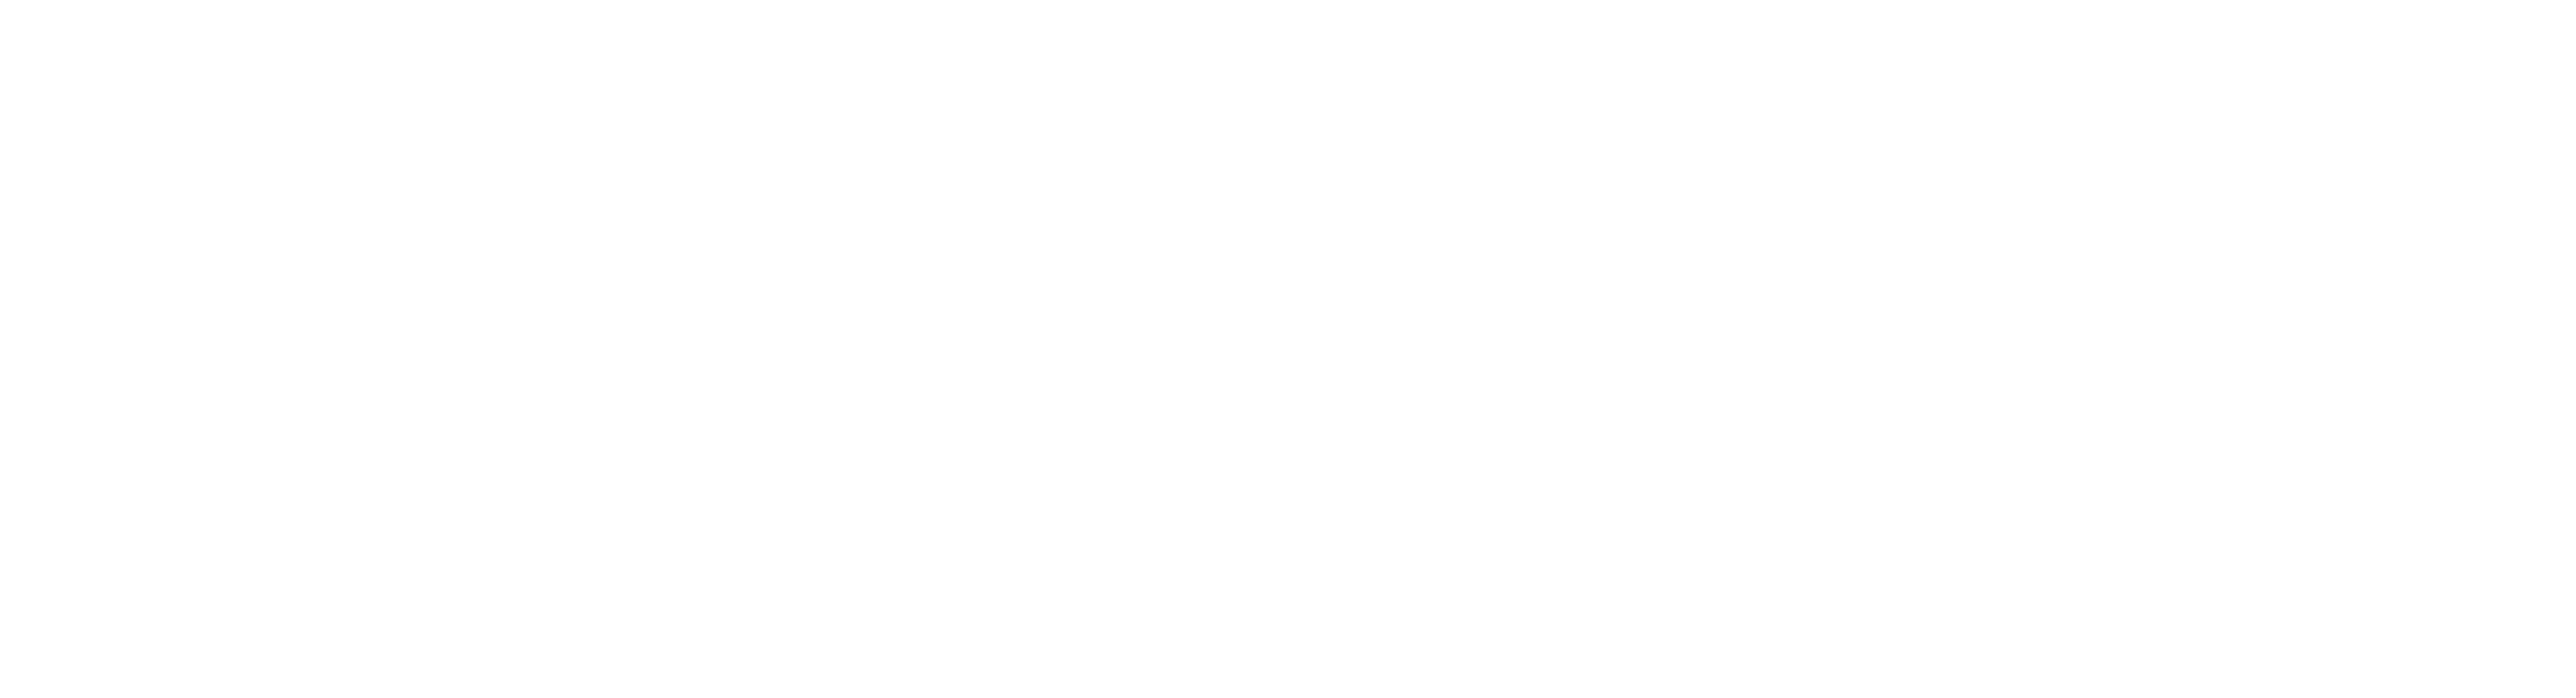 Frends iPaaS is a browser based hyperautomation platform enabling digitalization. Frends iPaaS brings together low-code API and automation development with a built-in Digital Integration Hub.